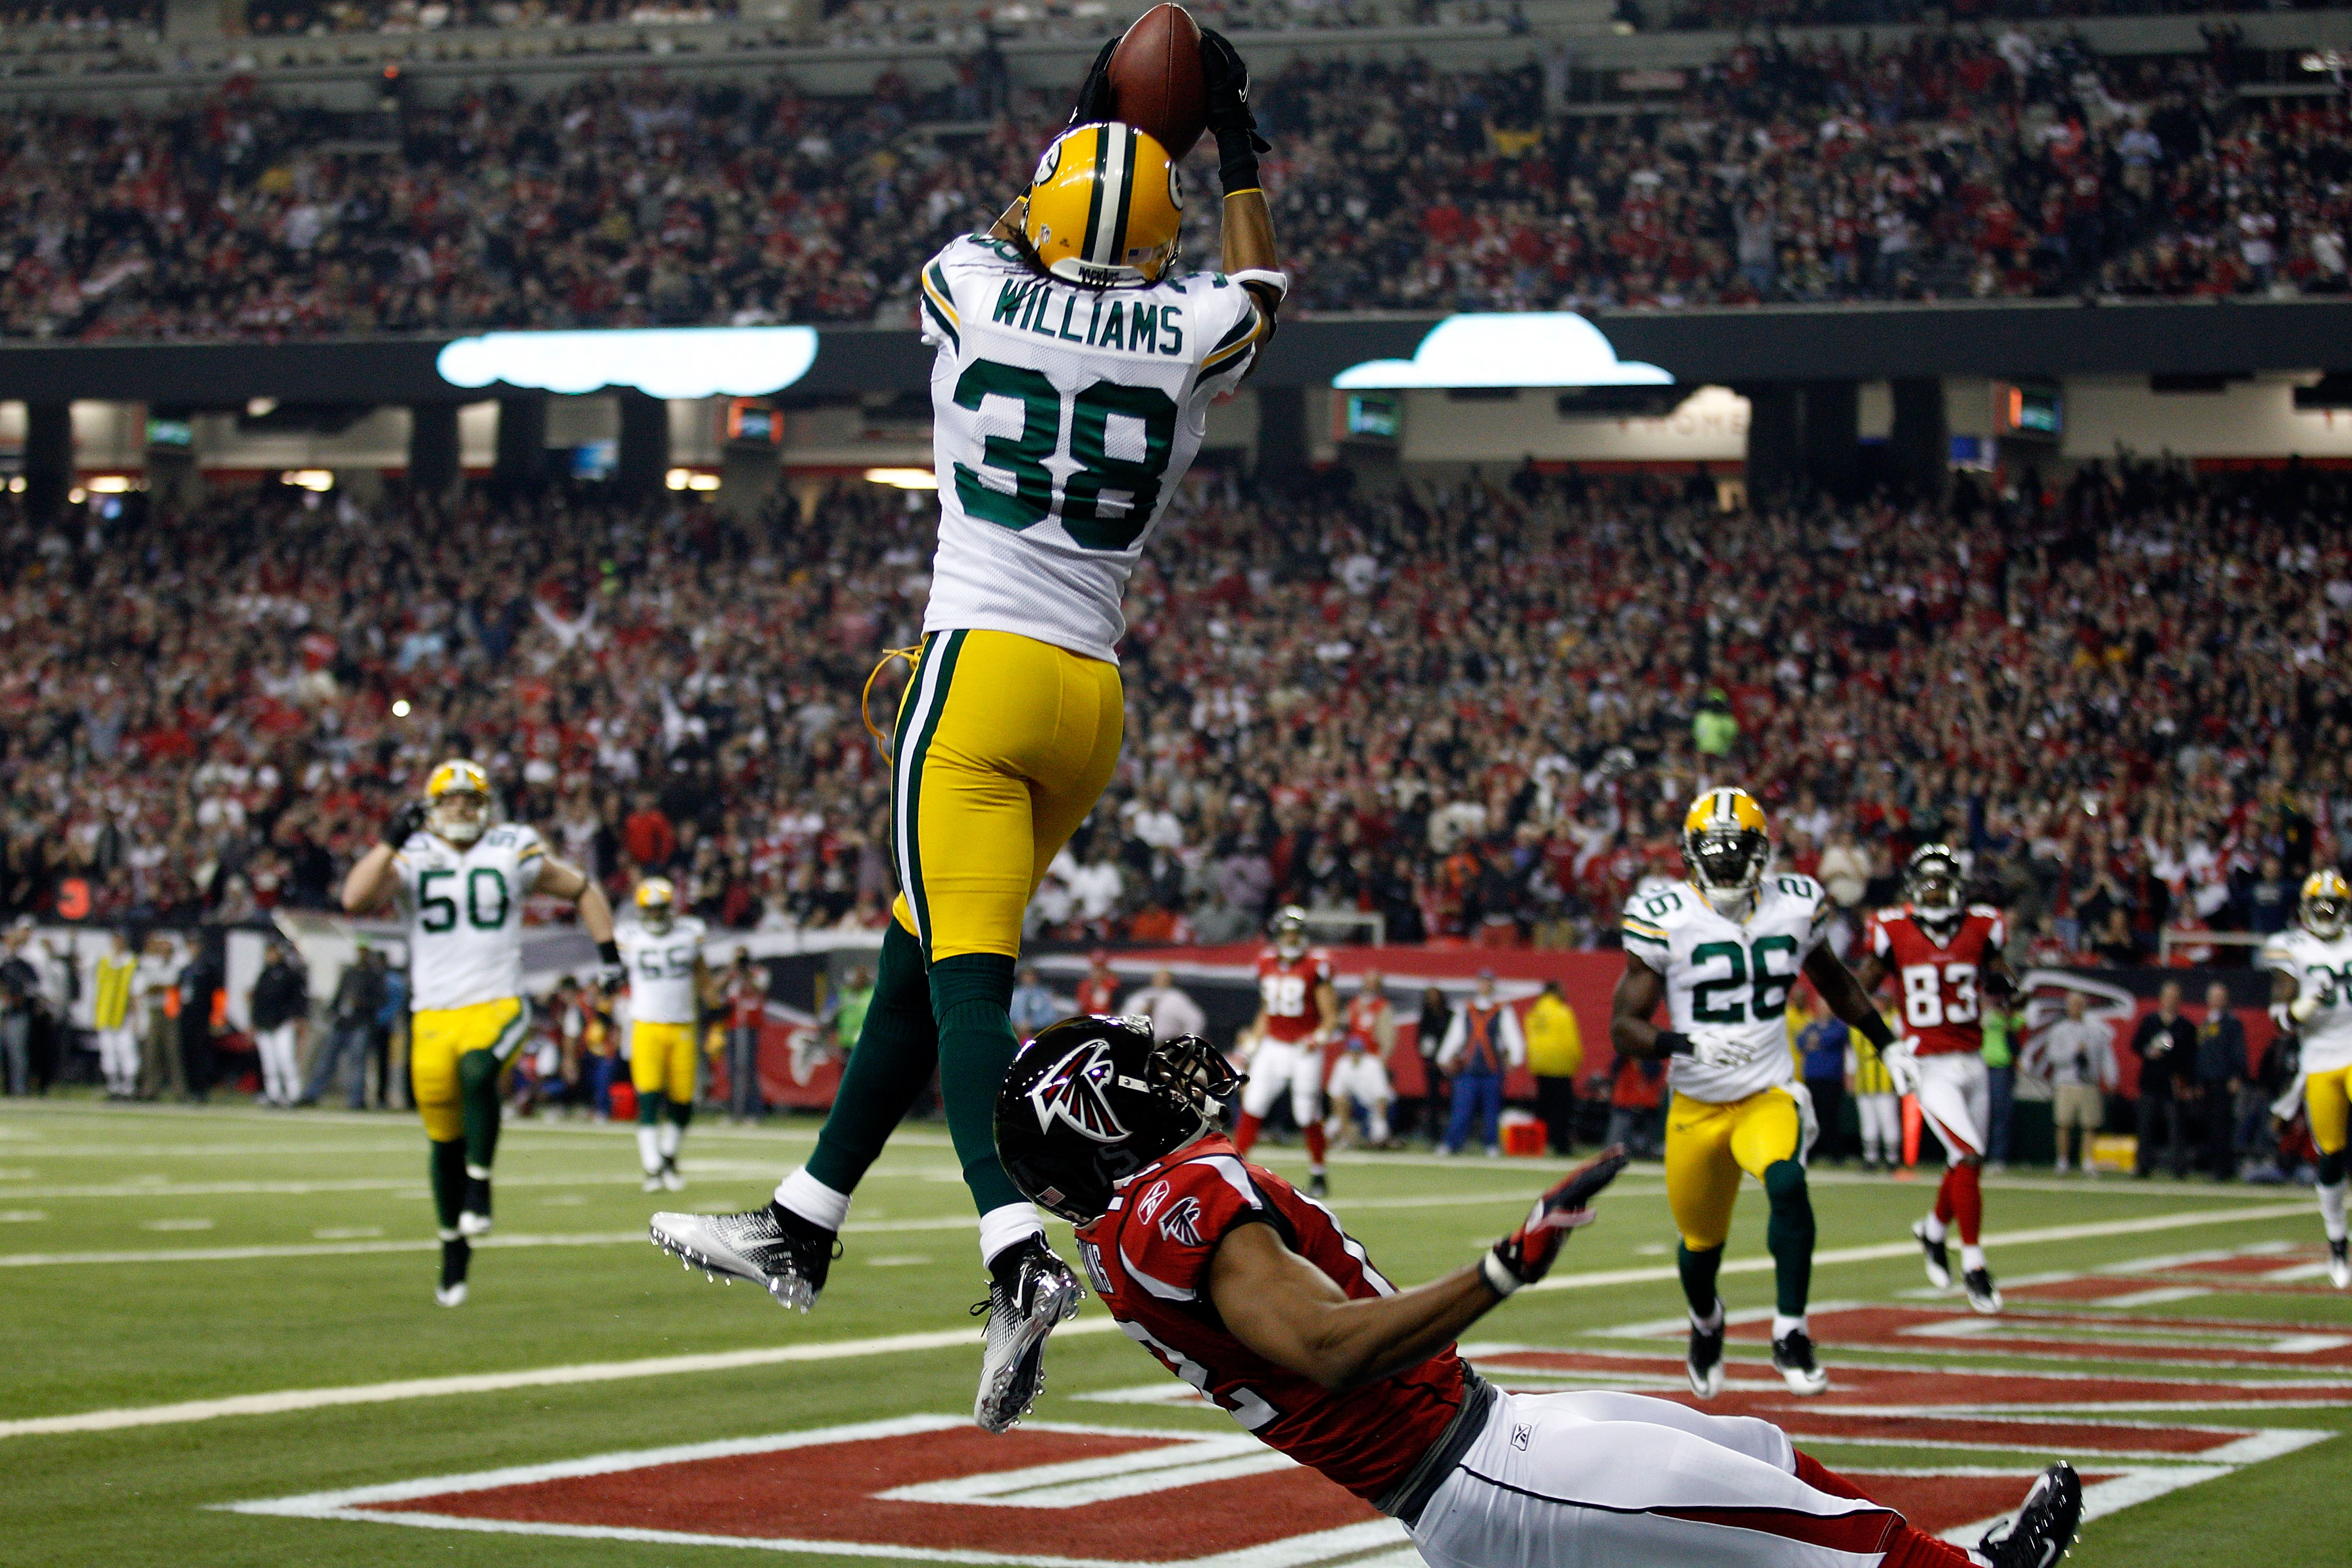 ATLANTA, GA - JANUARY 15:  Tramon Williams #38 of the Green Bay Packers intercepts a pass in the endzone against Michael Jenkins #12 of the Atlanta Falcons during their 2011 NFC divisional playoff game at Georgia Dome on January 15, 2011 in Atlanta, Georg